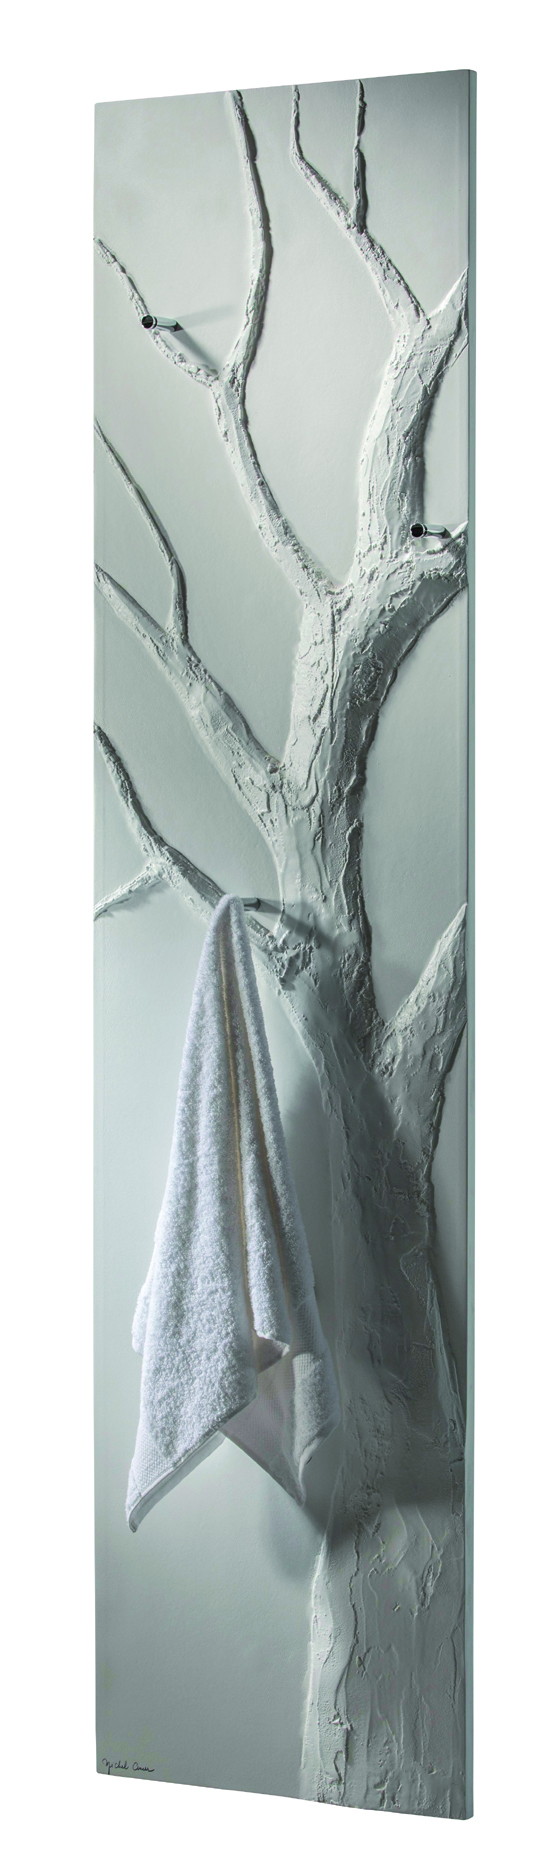 Cinier Arbre Bain Bath Tree Towel Warmer & Radiator in Olycal Stone